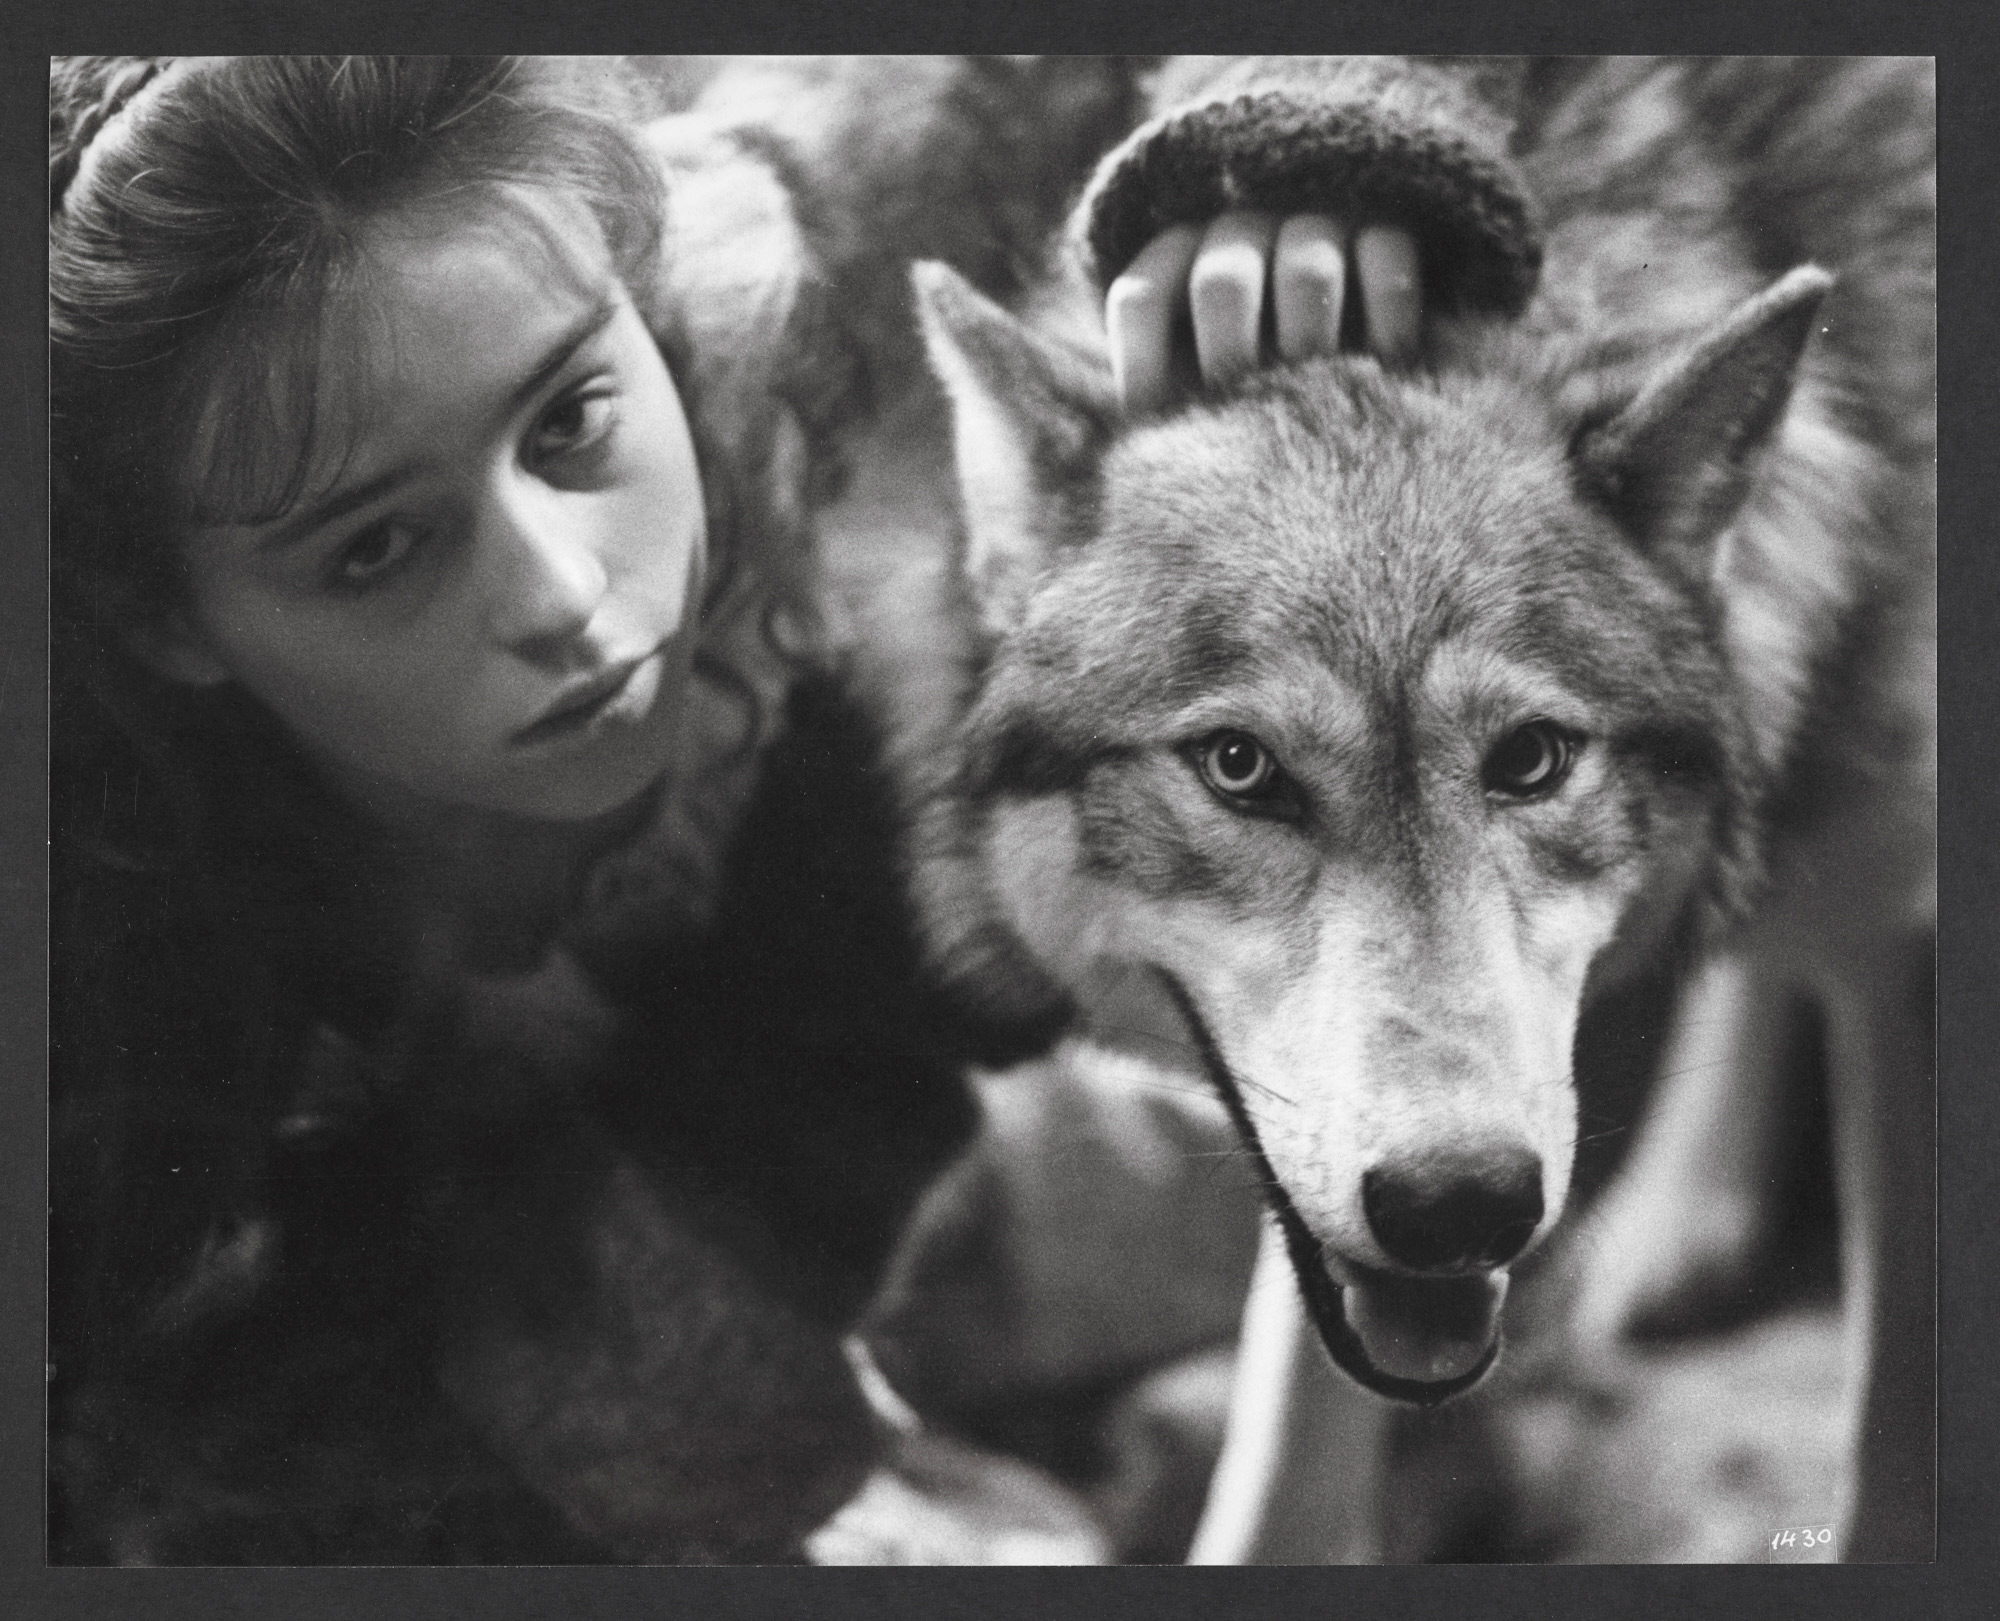 Angela Carter's wolf tales ('The Werewolf', 'The Company of